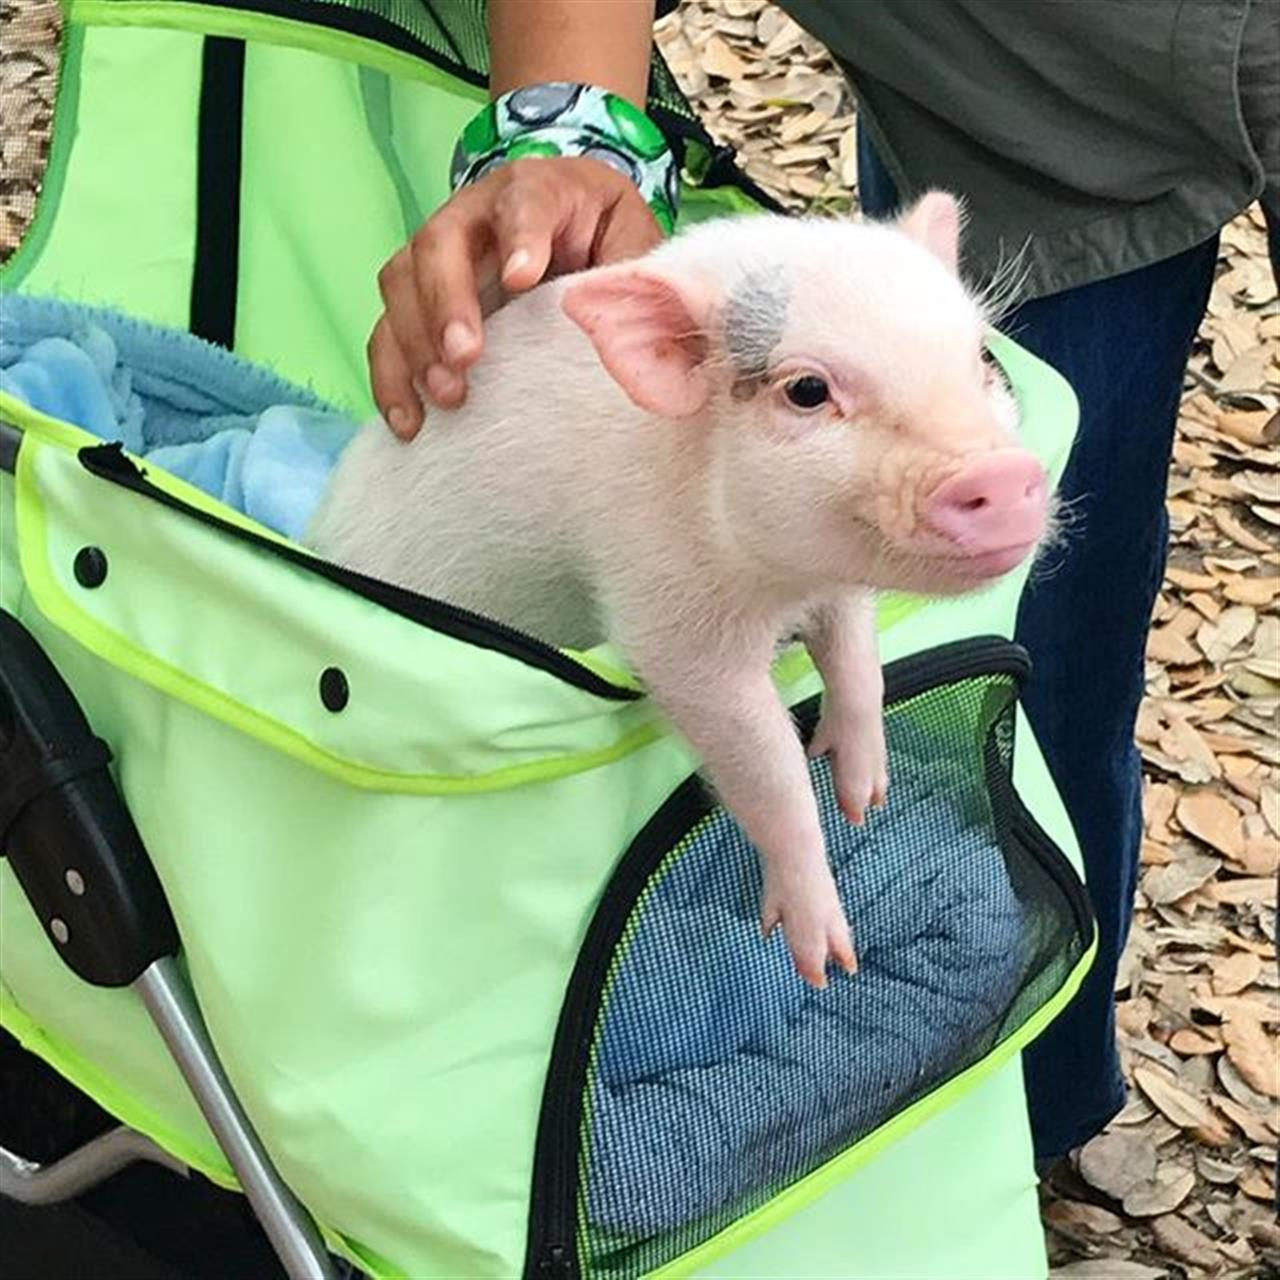 "This is our new best friend Hank. It's a mini pig's world, and we're all just living in it! <span class=""emoji-outer emoji-sizer""><span class=""emoji-inner"" style=""background: url(chrome-extension://immhpnclomdloikkpcefncmfgjbkojmh/emoji-data/sheet_apple_64.png);background-position:22.916666666666668% 64.58333333333334%;background-size:4900%"" data-codepoints=""1f437""></span></span> #OnlyInNola"